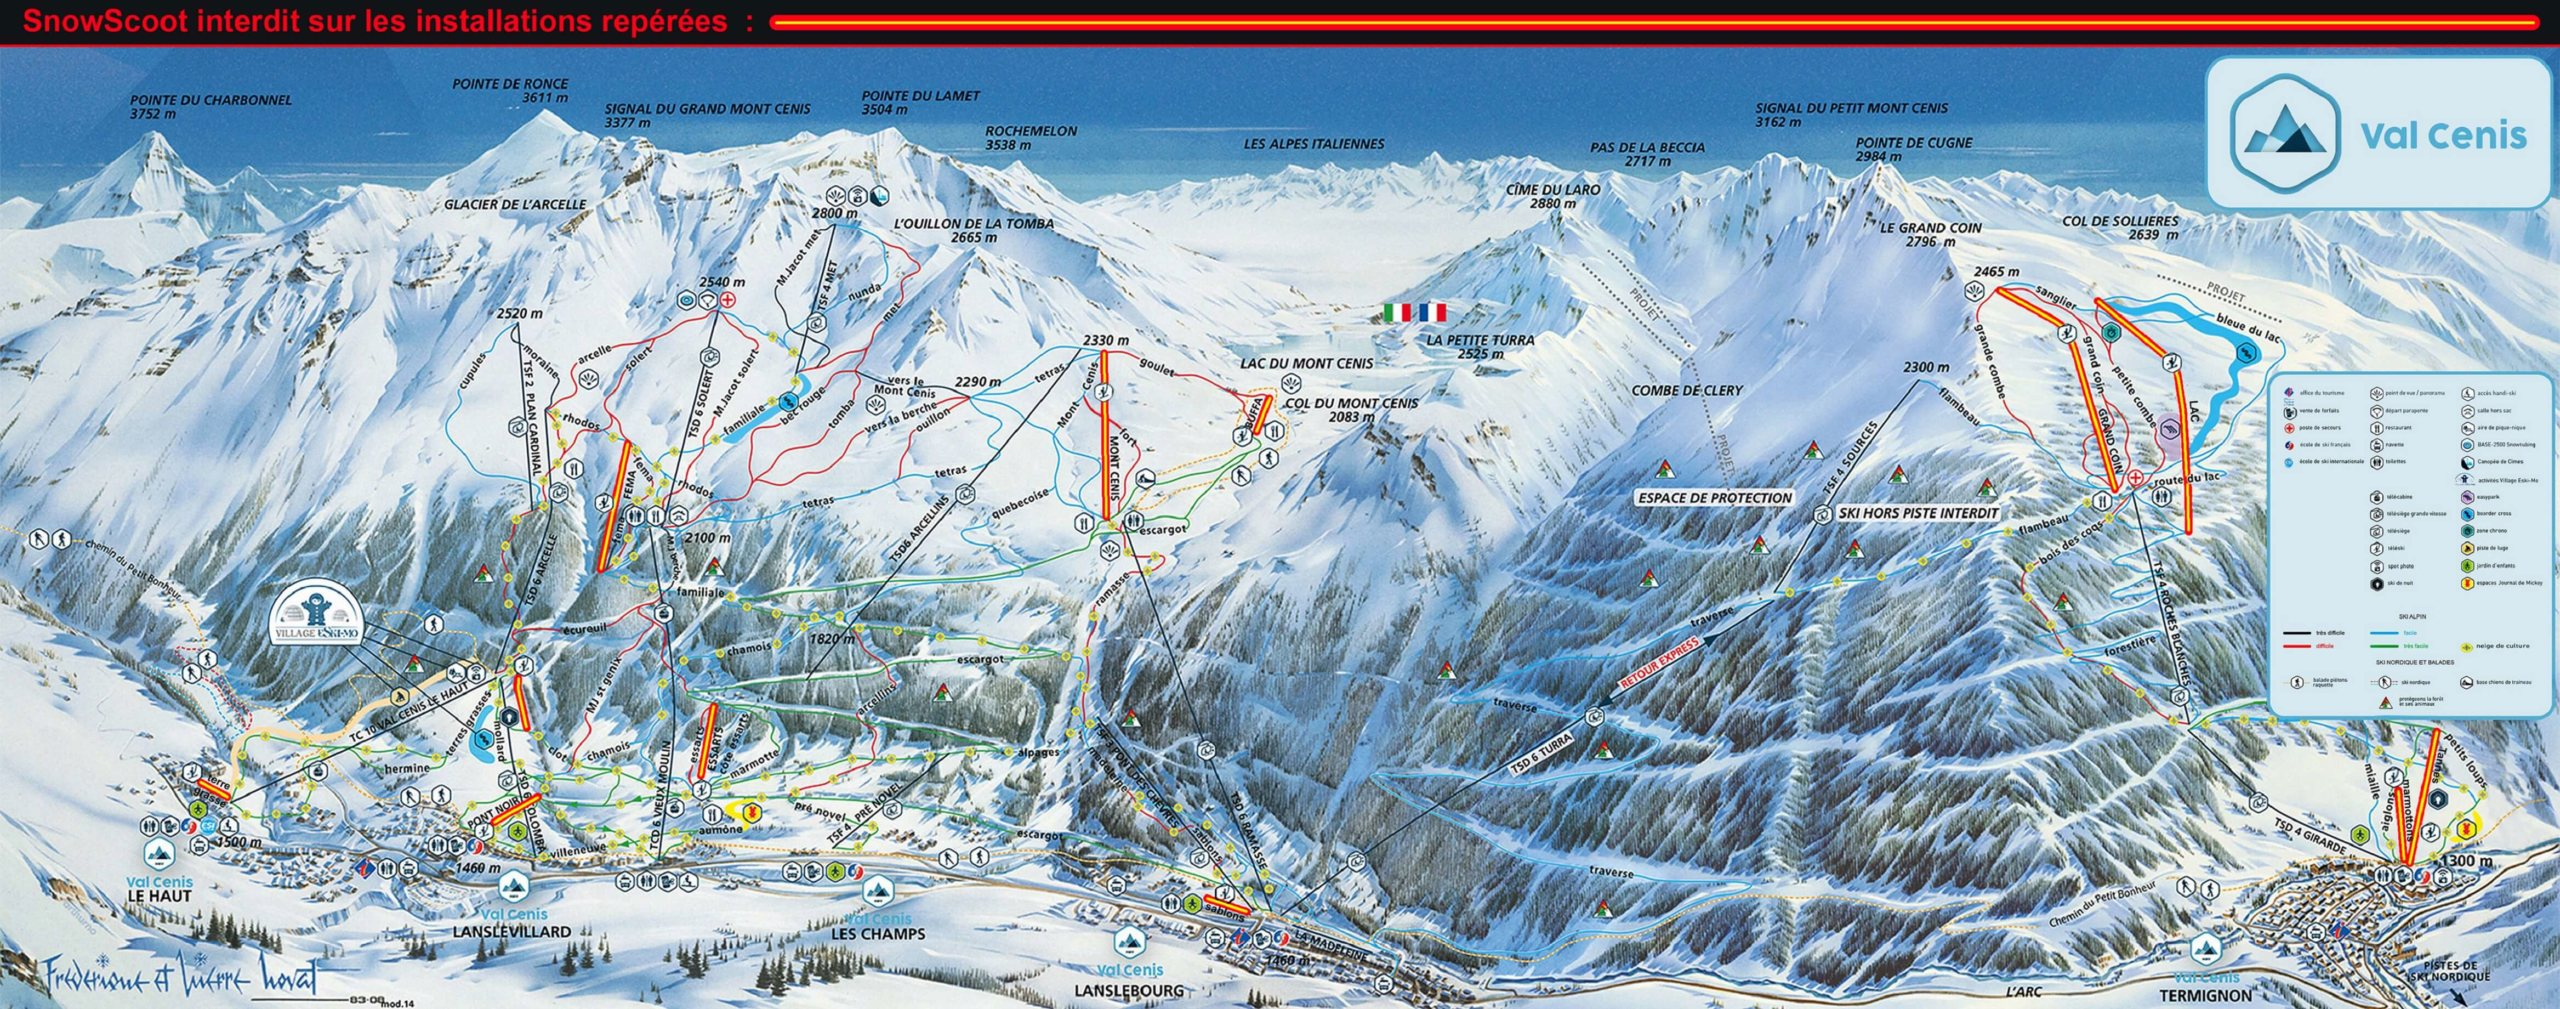 73 - Val Cenis. Snows_18